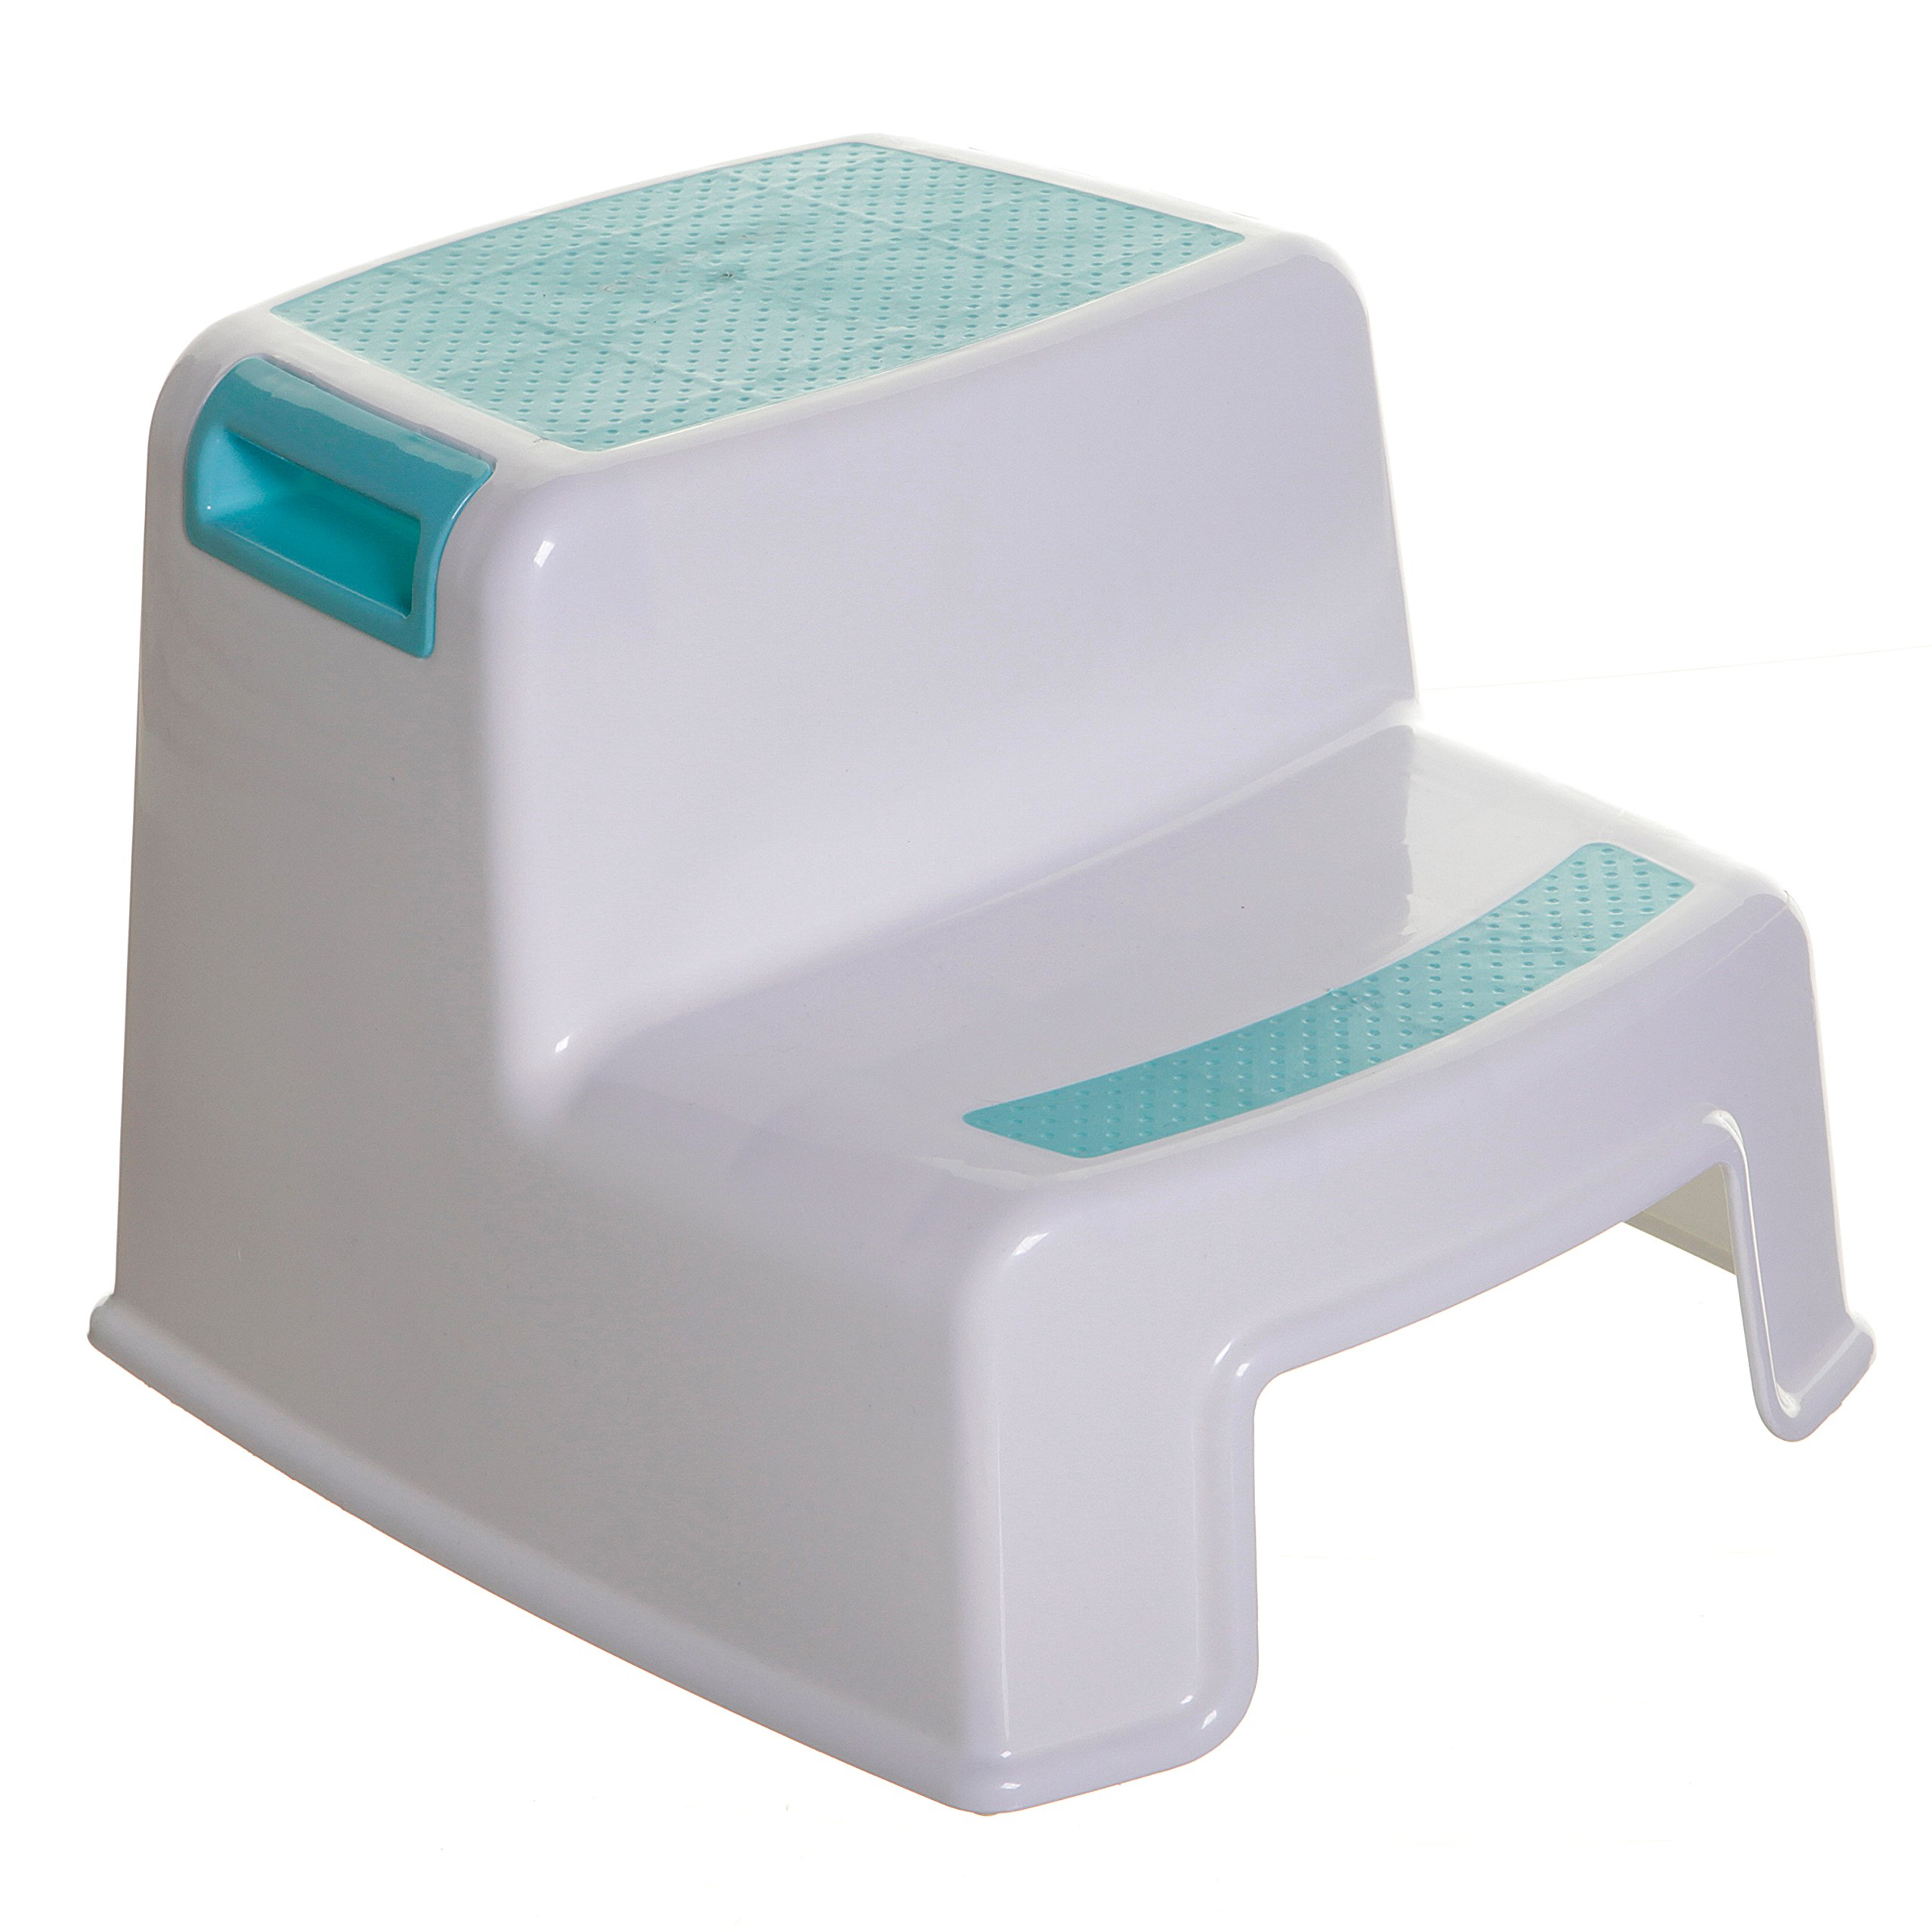 Dreambaby Two-Up Height Step Stool, White/Aqua